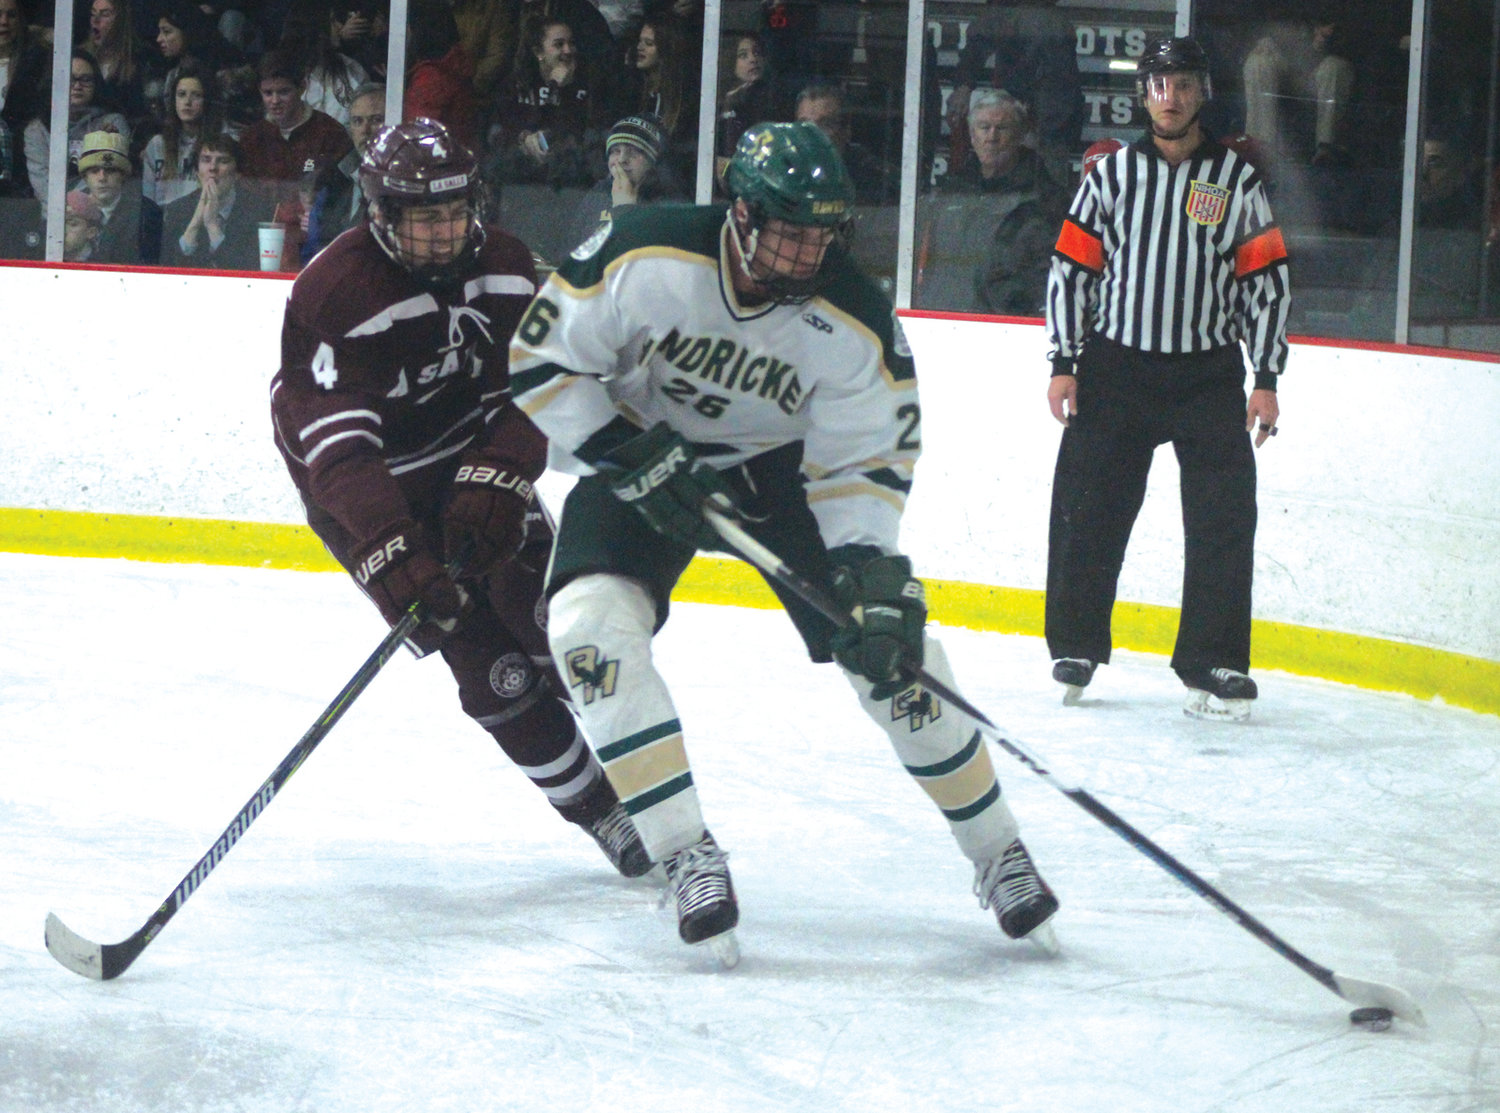 ALONG THE BOARDS: Bishop Hendricken's Jonathan Barker works against a La Salle forward to clear the Hawks' zone on Friday night at the Thayer Arena. The two clubs battled to a 4-4 tie.